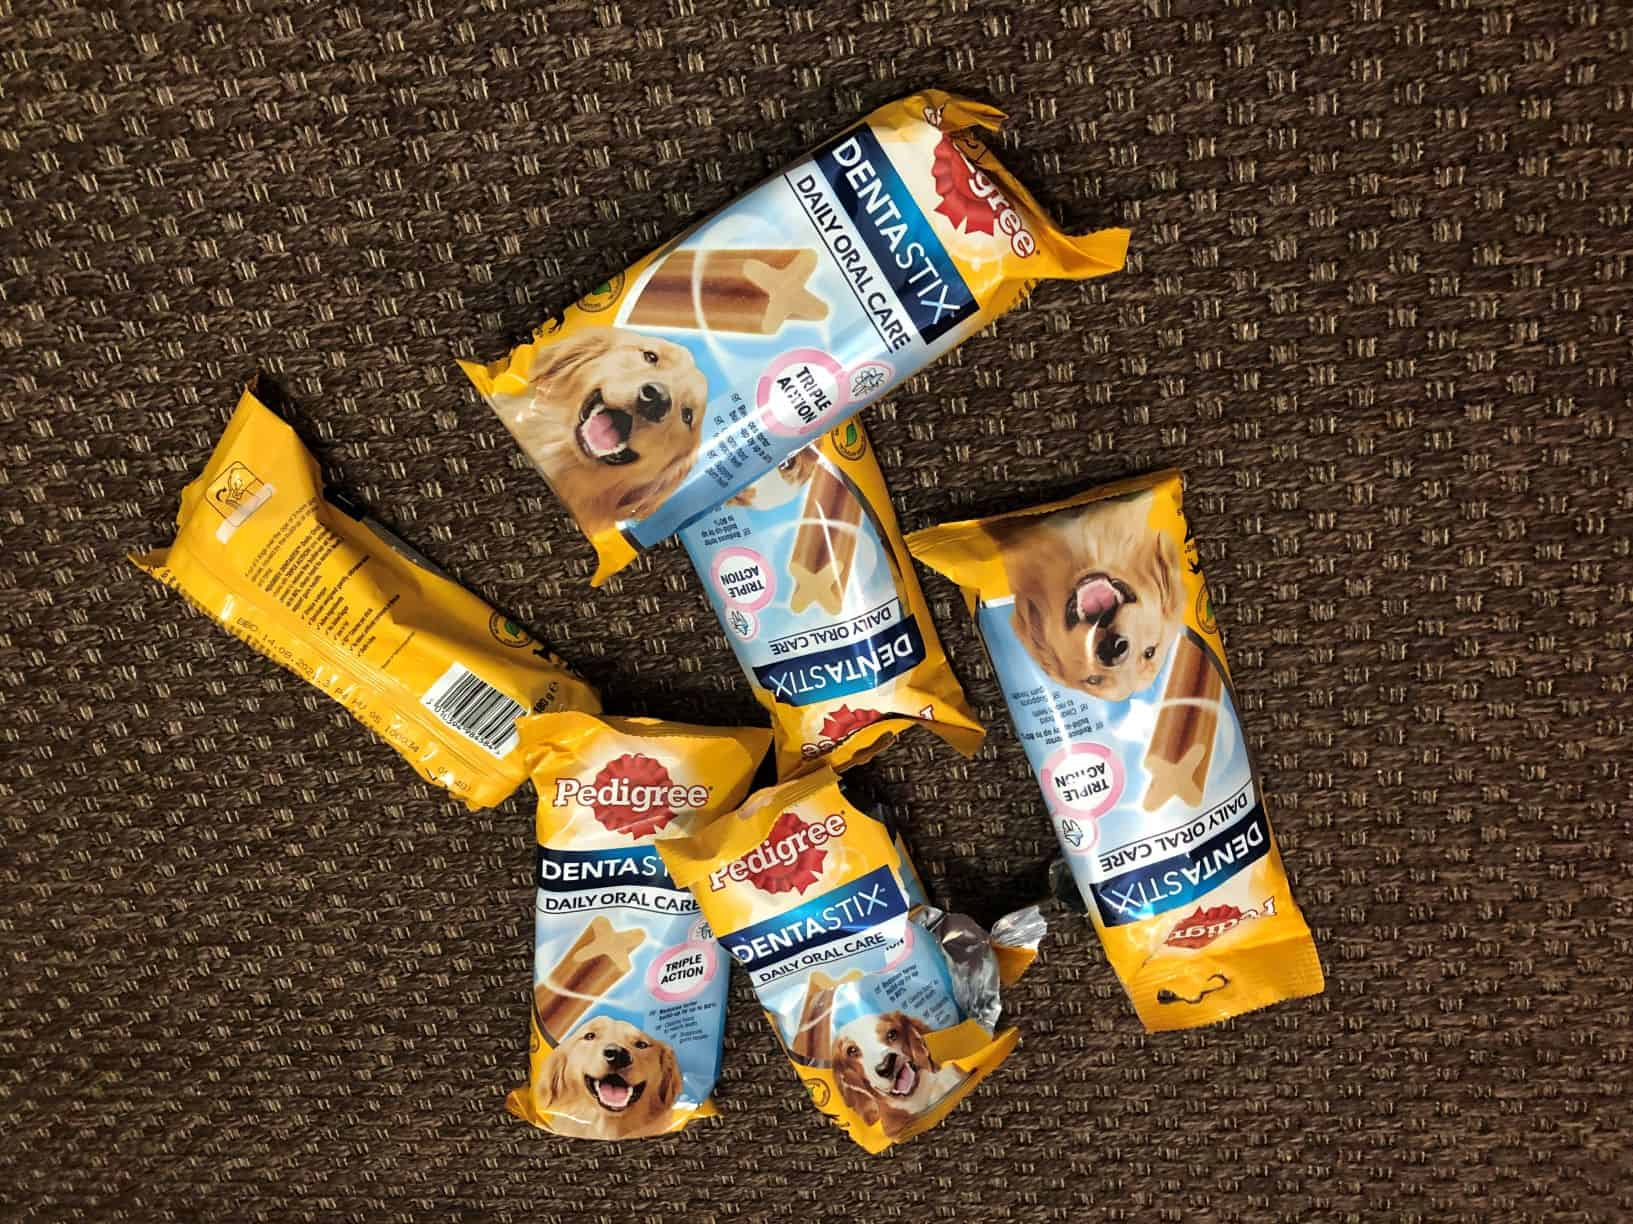 Dog ate entire bag of Dentastix!